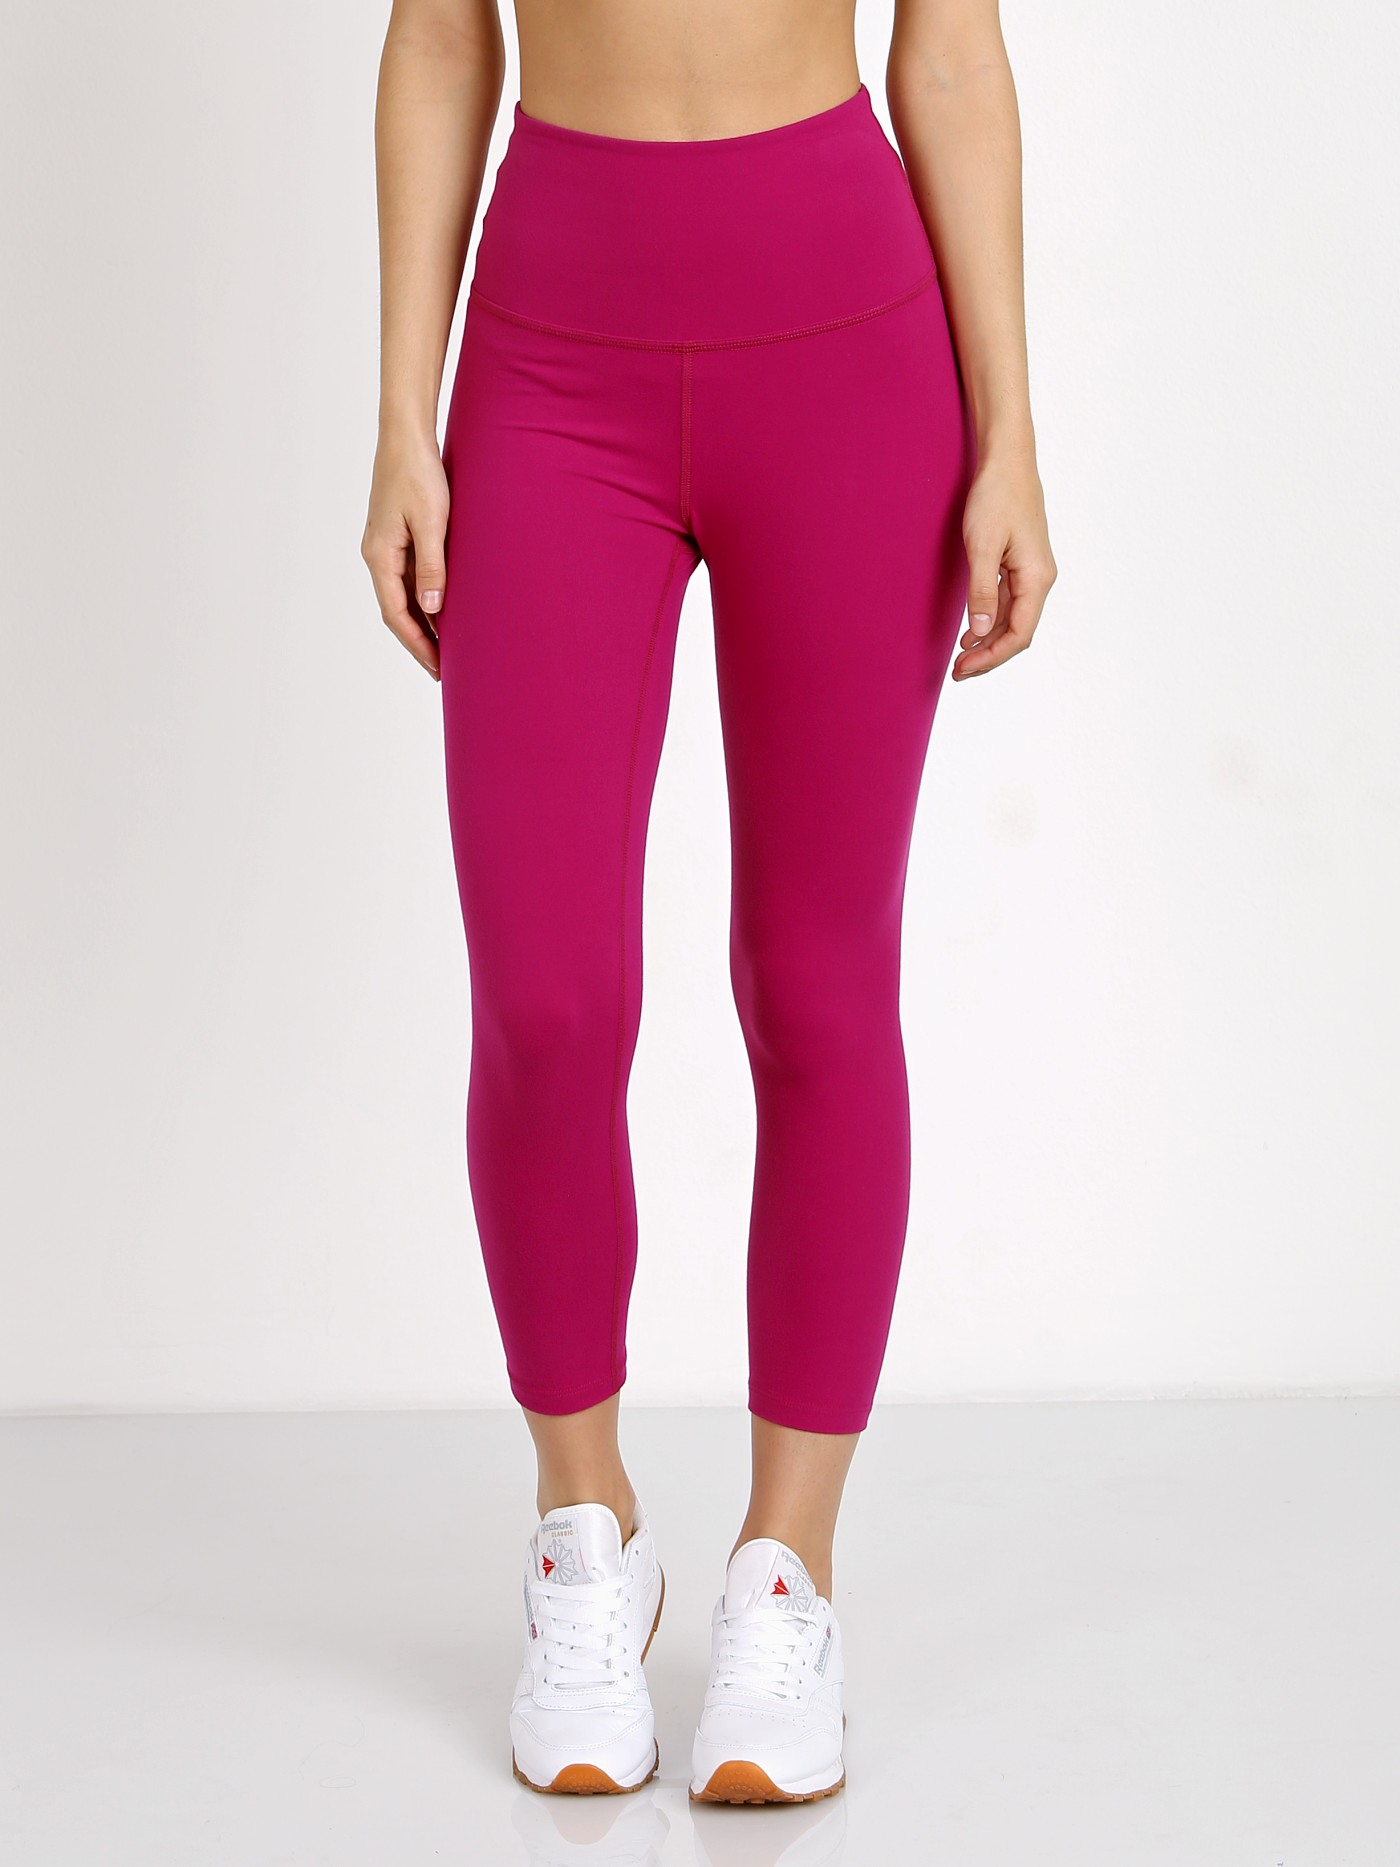 76dbea75fca1d Beyond Yoga Walk and Talk High Waisted Plumberry SP3106 - Free Shipping at Largo  Drive